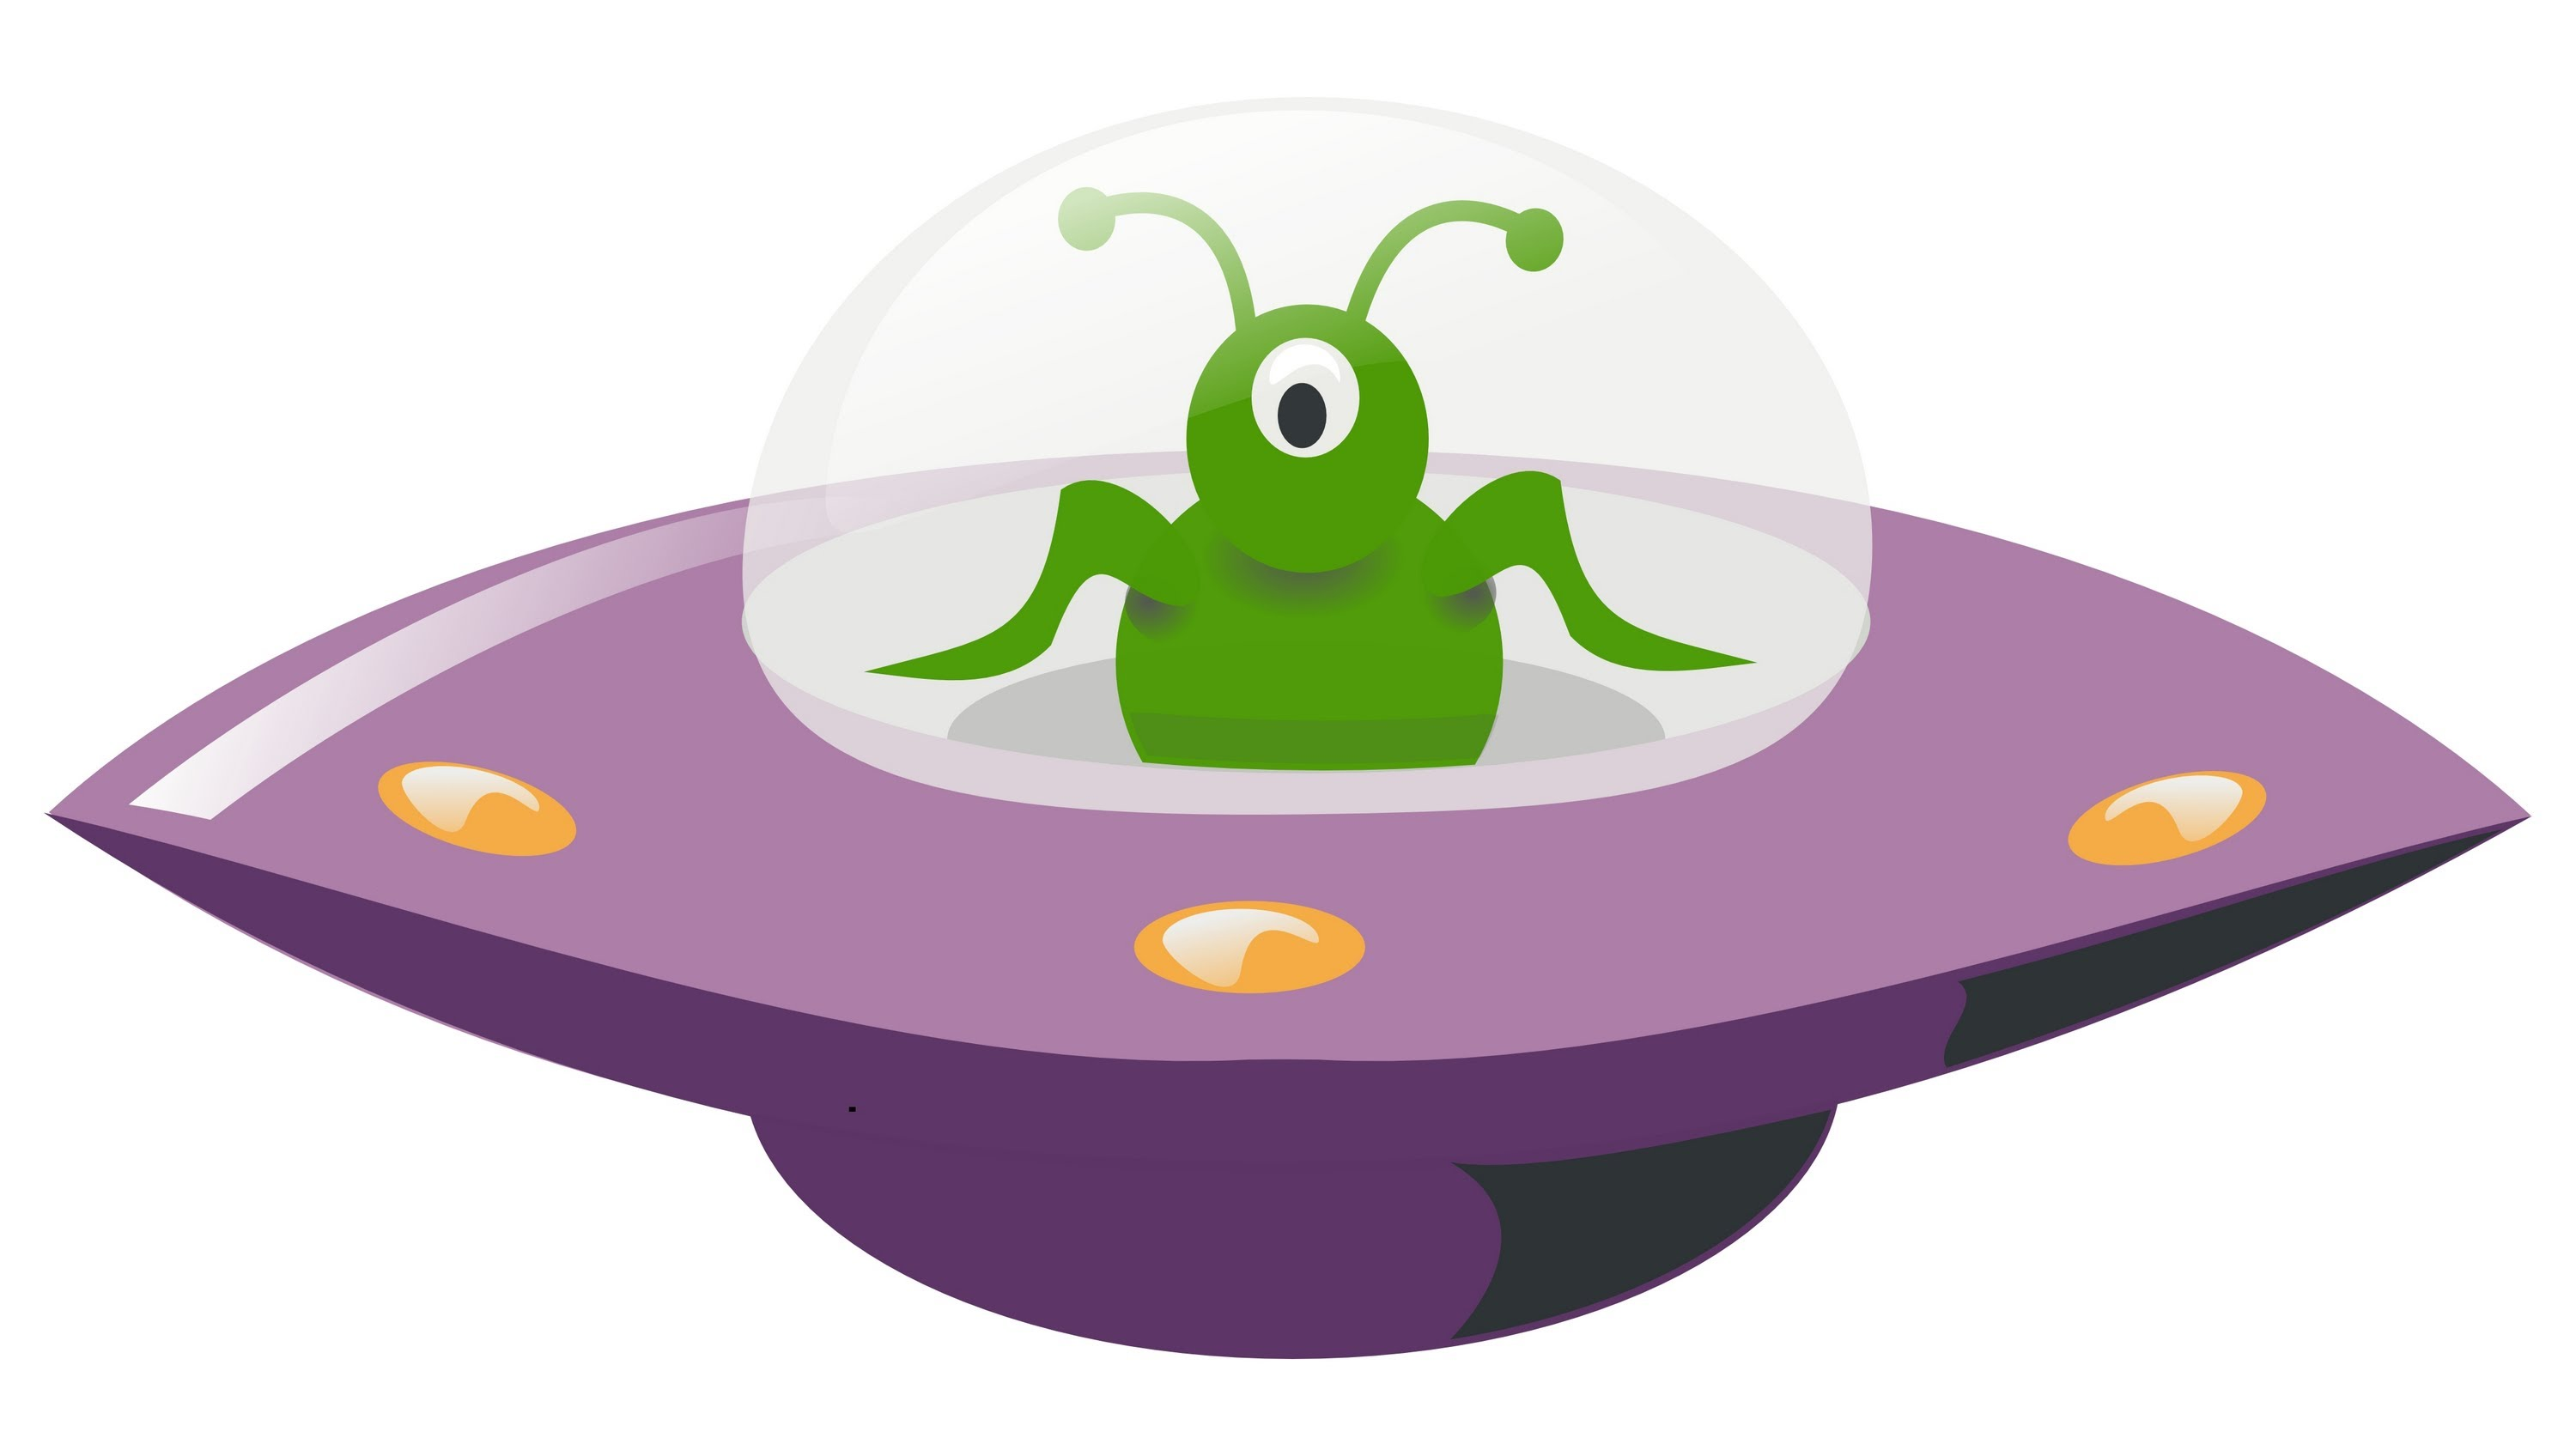 UFO clipart alien invasion Ufo clipart Clipart Ufo and